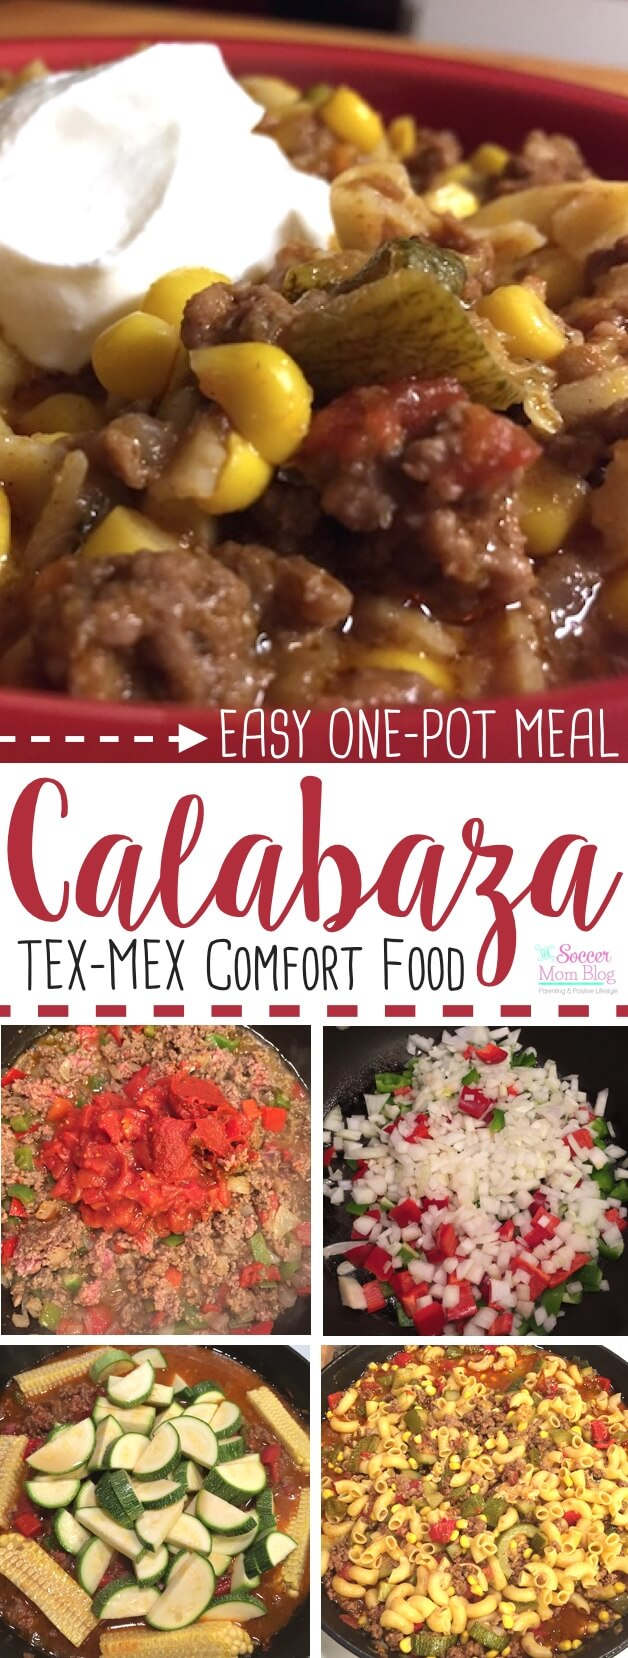 The Tex-Mex take on Goulash - Calabaza stew is thick, hearty, and delicious - plus it's easy to make: a one-pot meal! The perfect comfort food soup recipe for fall and winter.